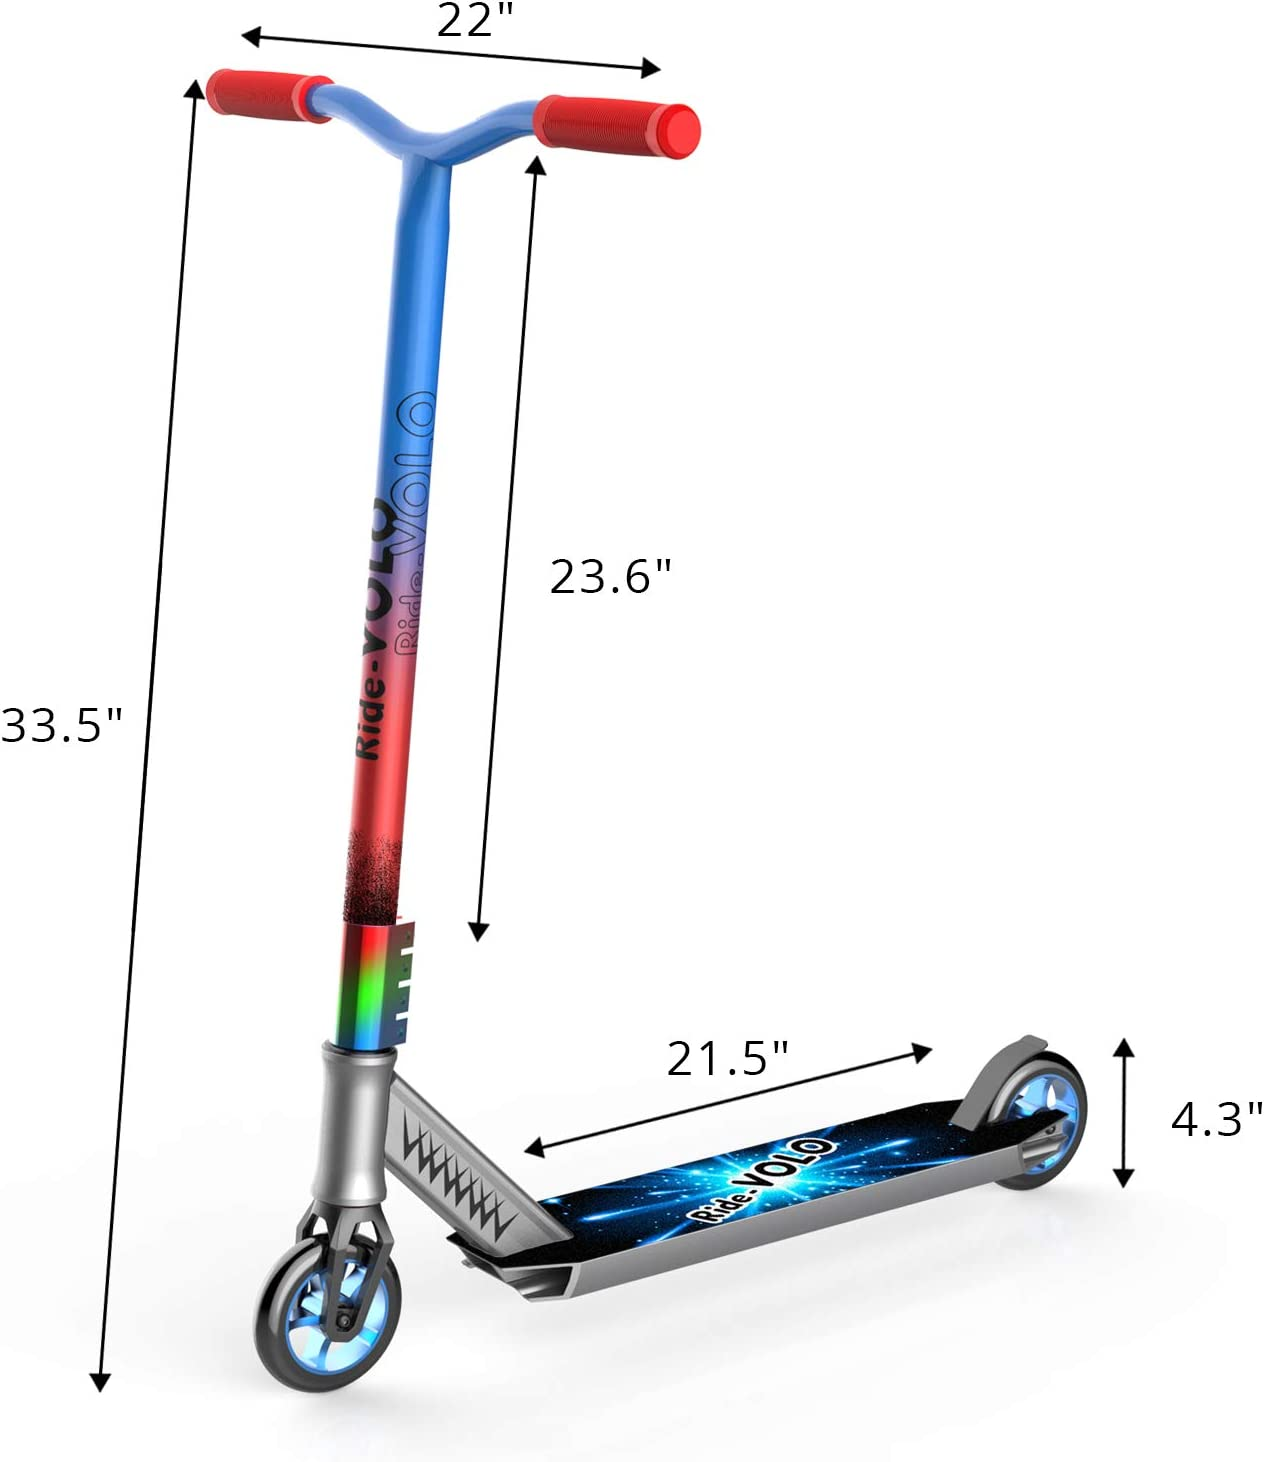 Best Entry Level Trick Scooter with Aluminum Alloy Core Wheels RideVOLO Pro Stunt Scooter Lightweight BMX Freestyle Kick Scooter for Beginners Kids 8 Years and Up Teens Adults